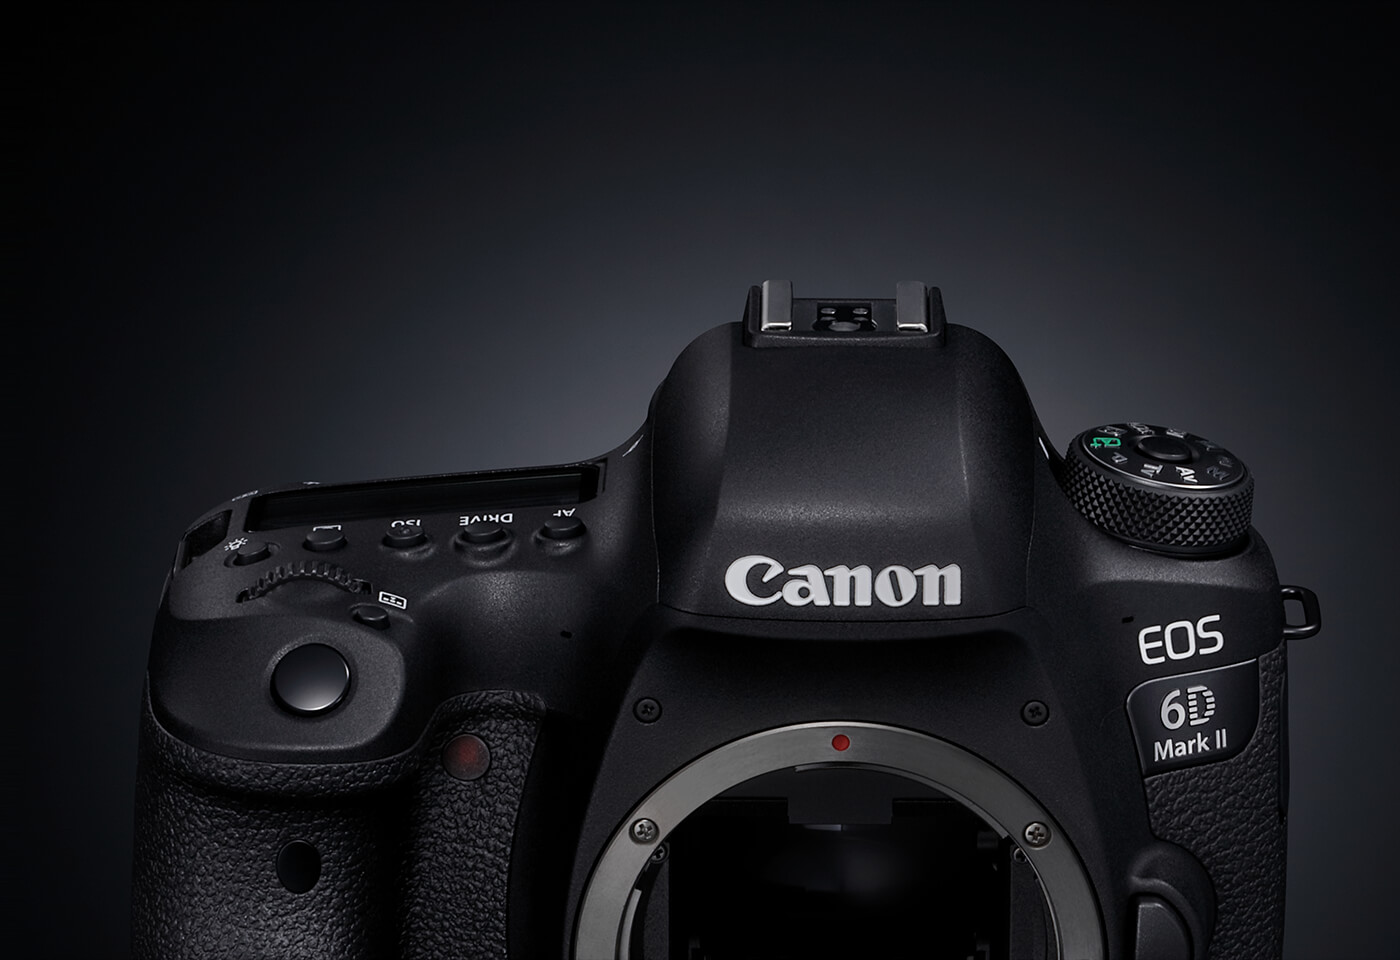 Eos 6d Mark Ii Vs Eos 6d Key Features And Comparison